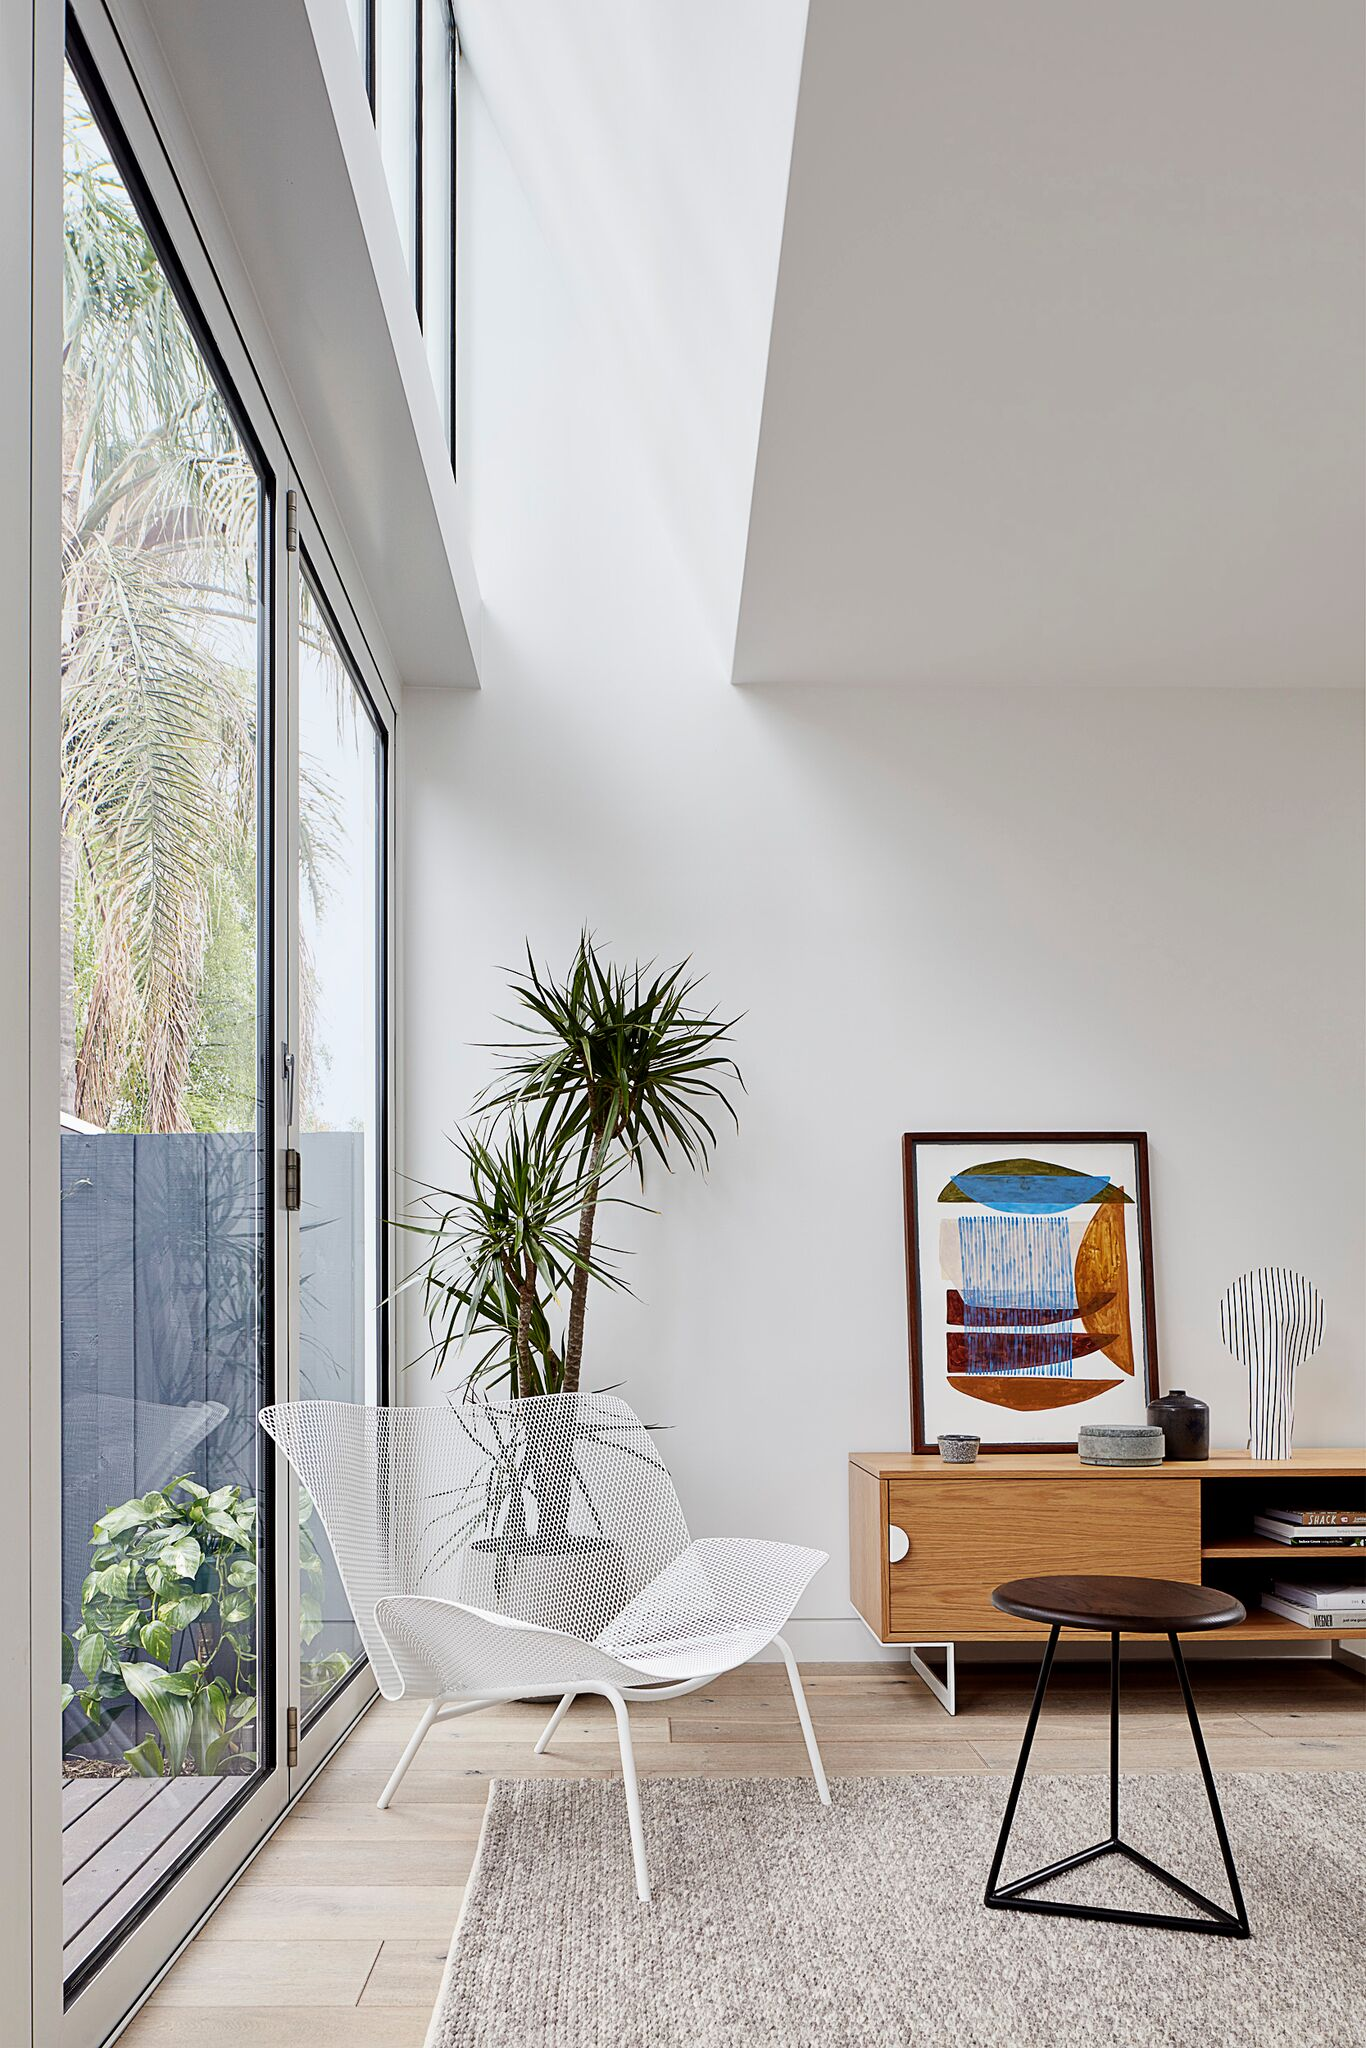 Gallery Of Oban Street By Mittelman Amsellem Architects Local Australian Architecture & Design South Yarra, Melbourne Image 2